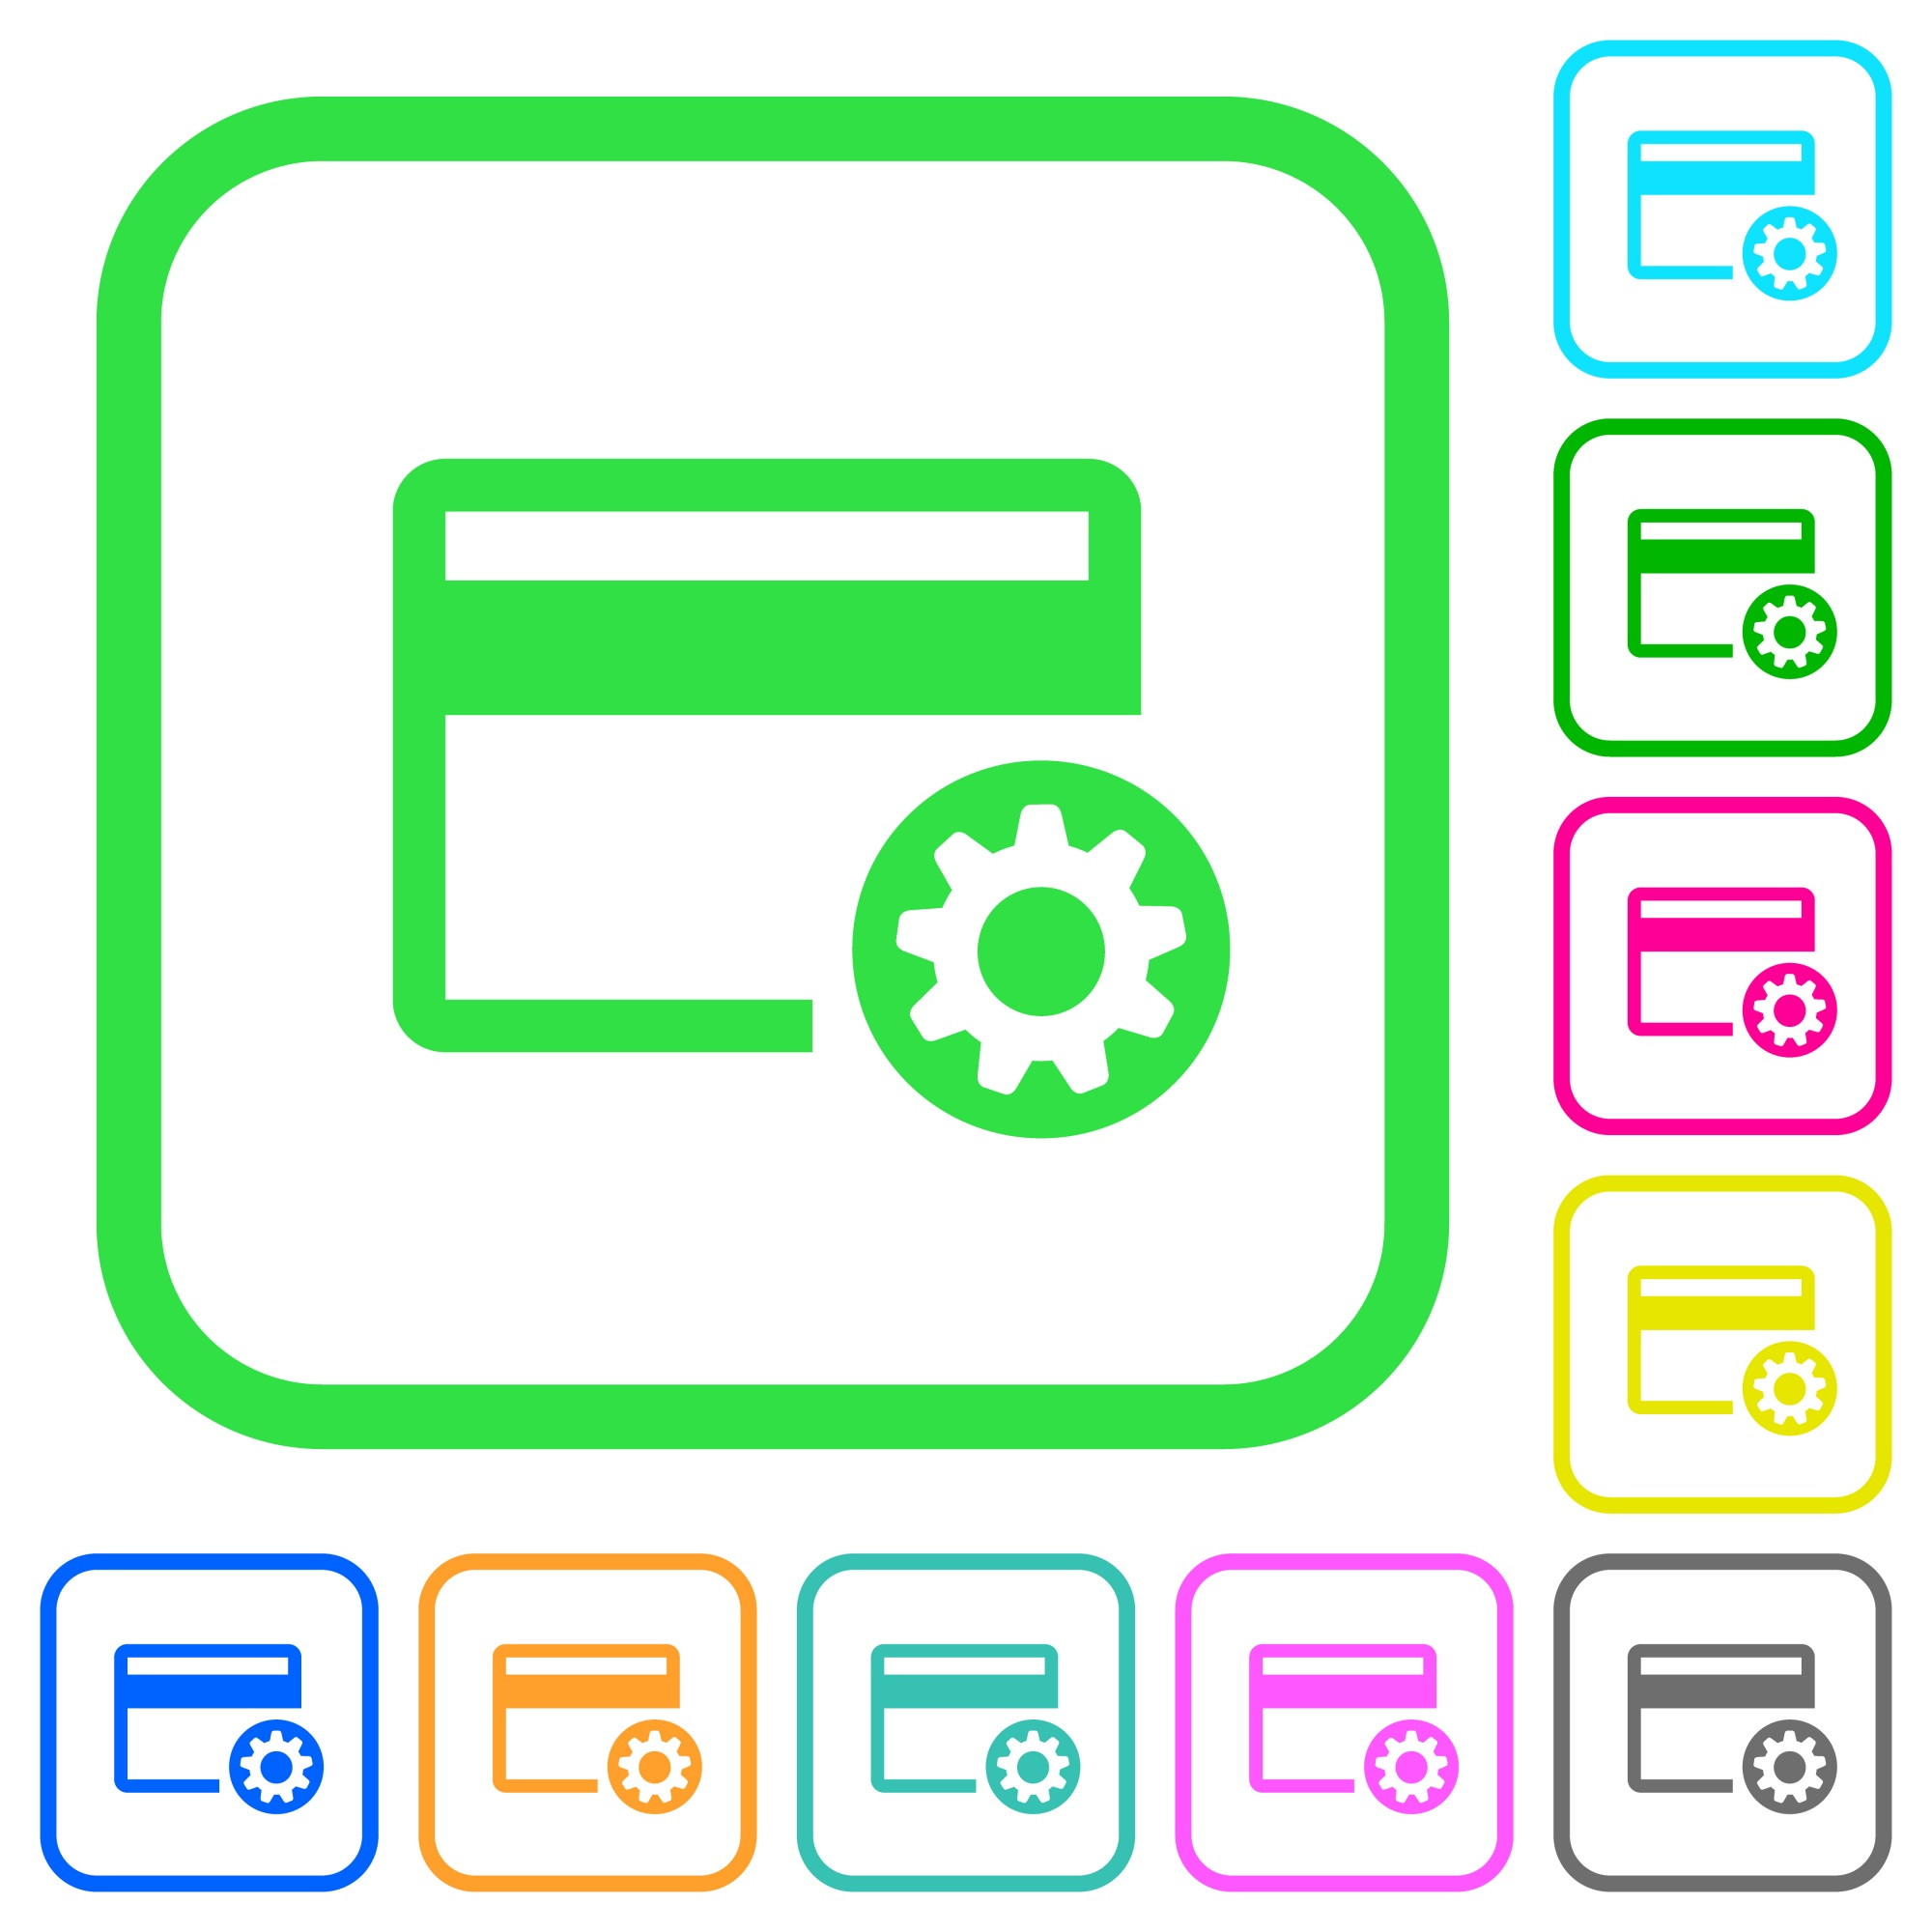 Credit card settings vivid colored flat icons in curved borders on white background - Free image